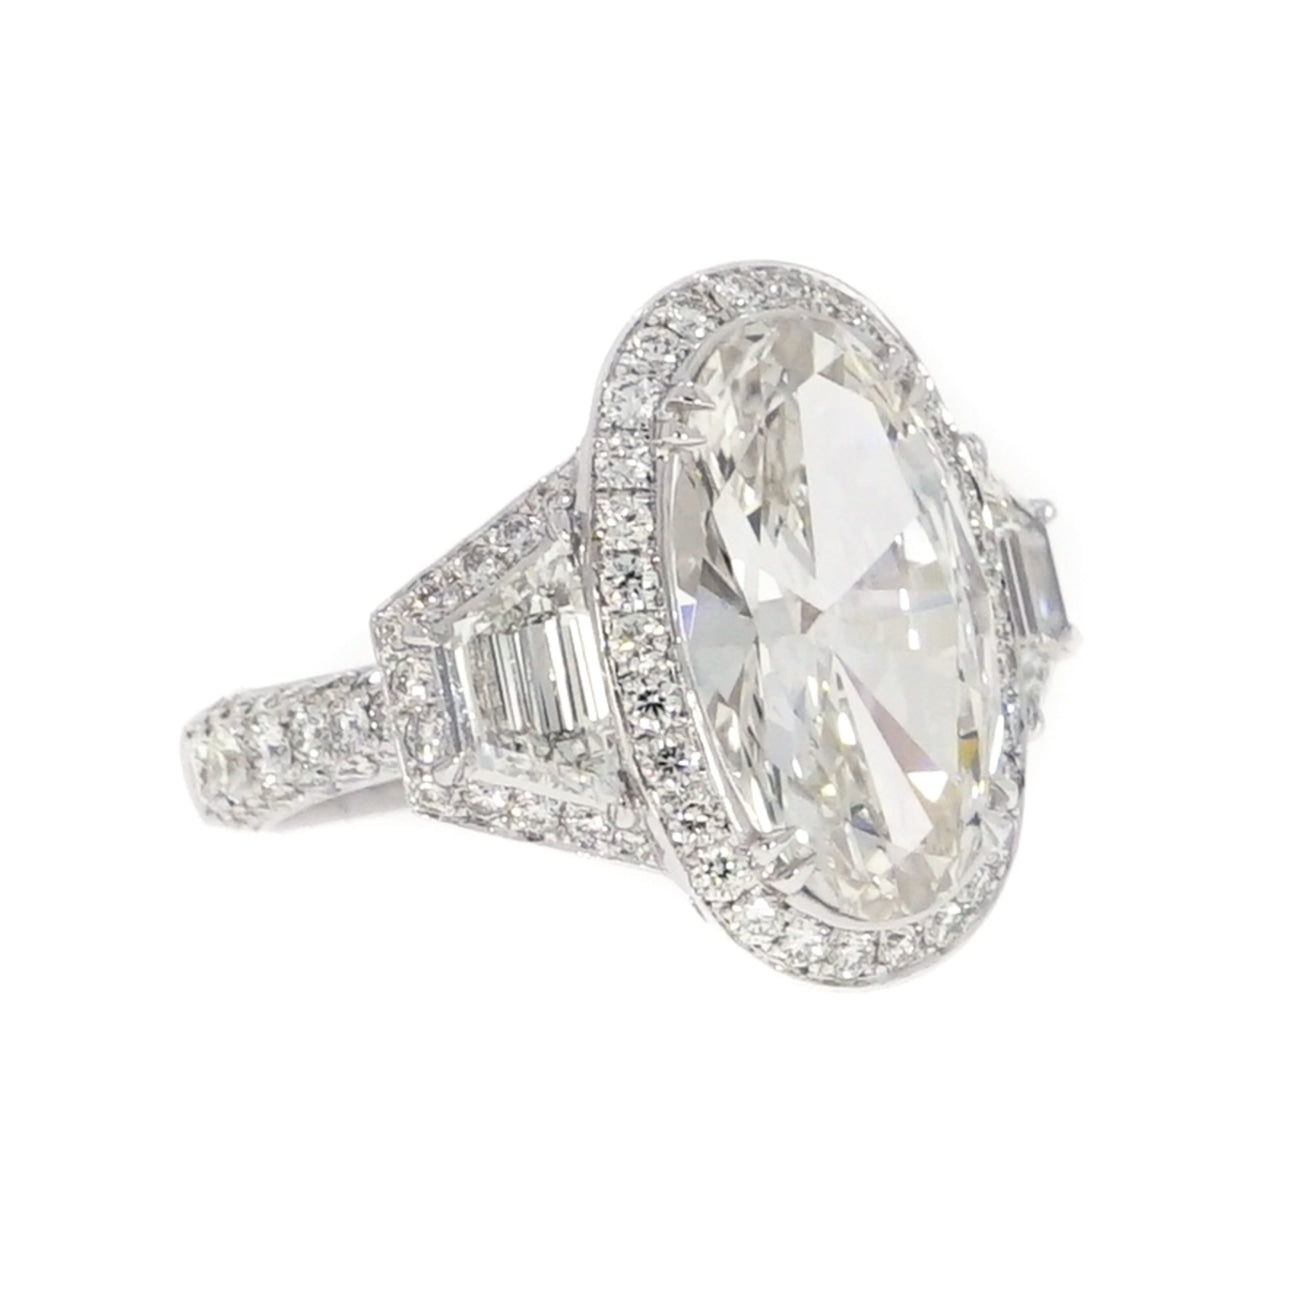 Manfredi Jewels Engagement - GIA Certified 4.34 ct. Oval Diamond Platinum Engagement Ring | Manfredi Jewels